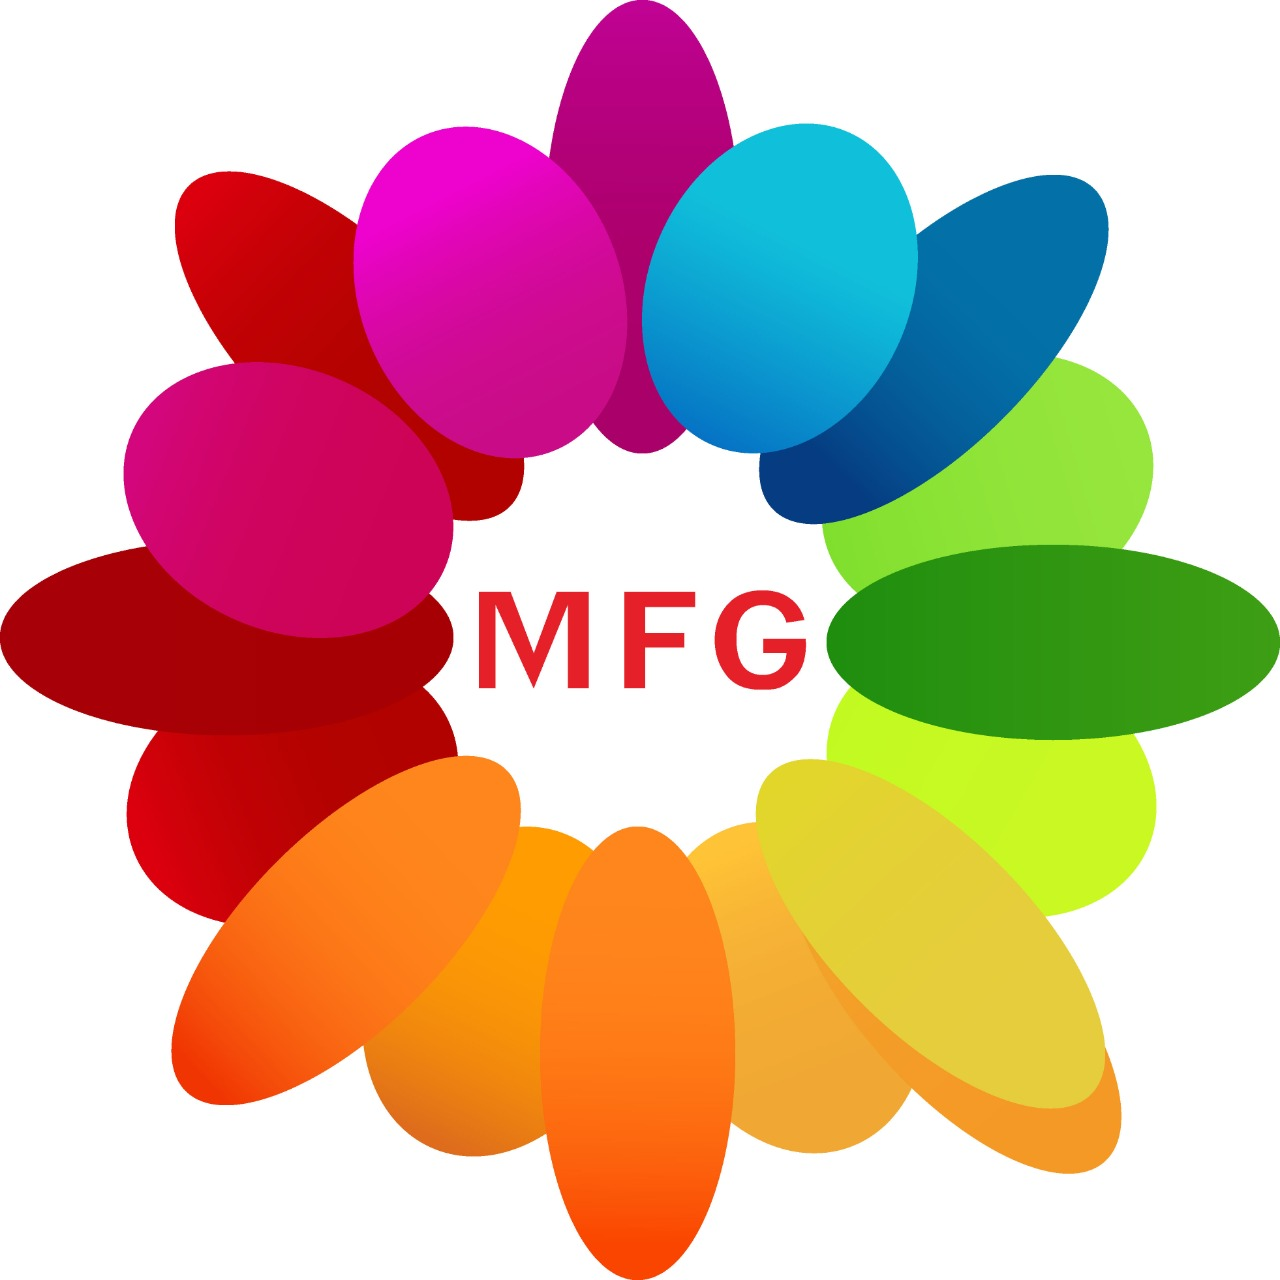 Bunch of 20 pink roses with 1 pound strawberry fresh cream cake with 3 blown balloons